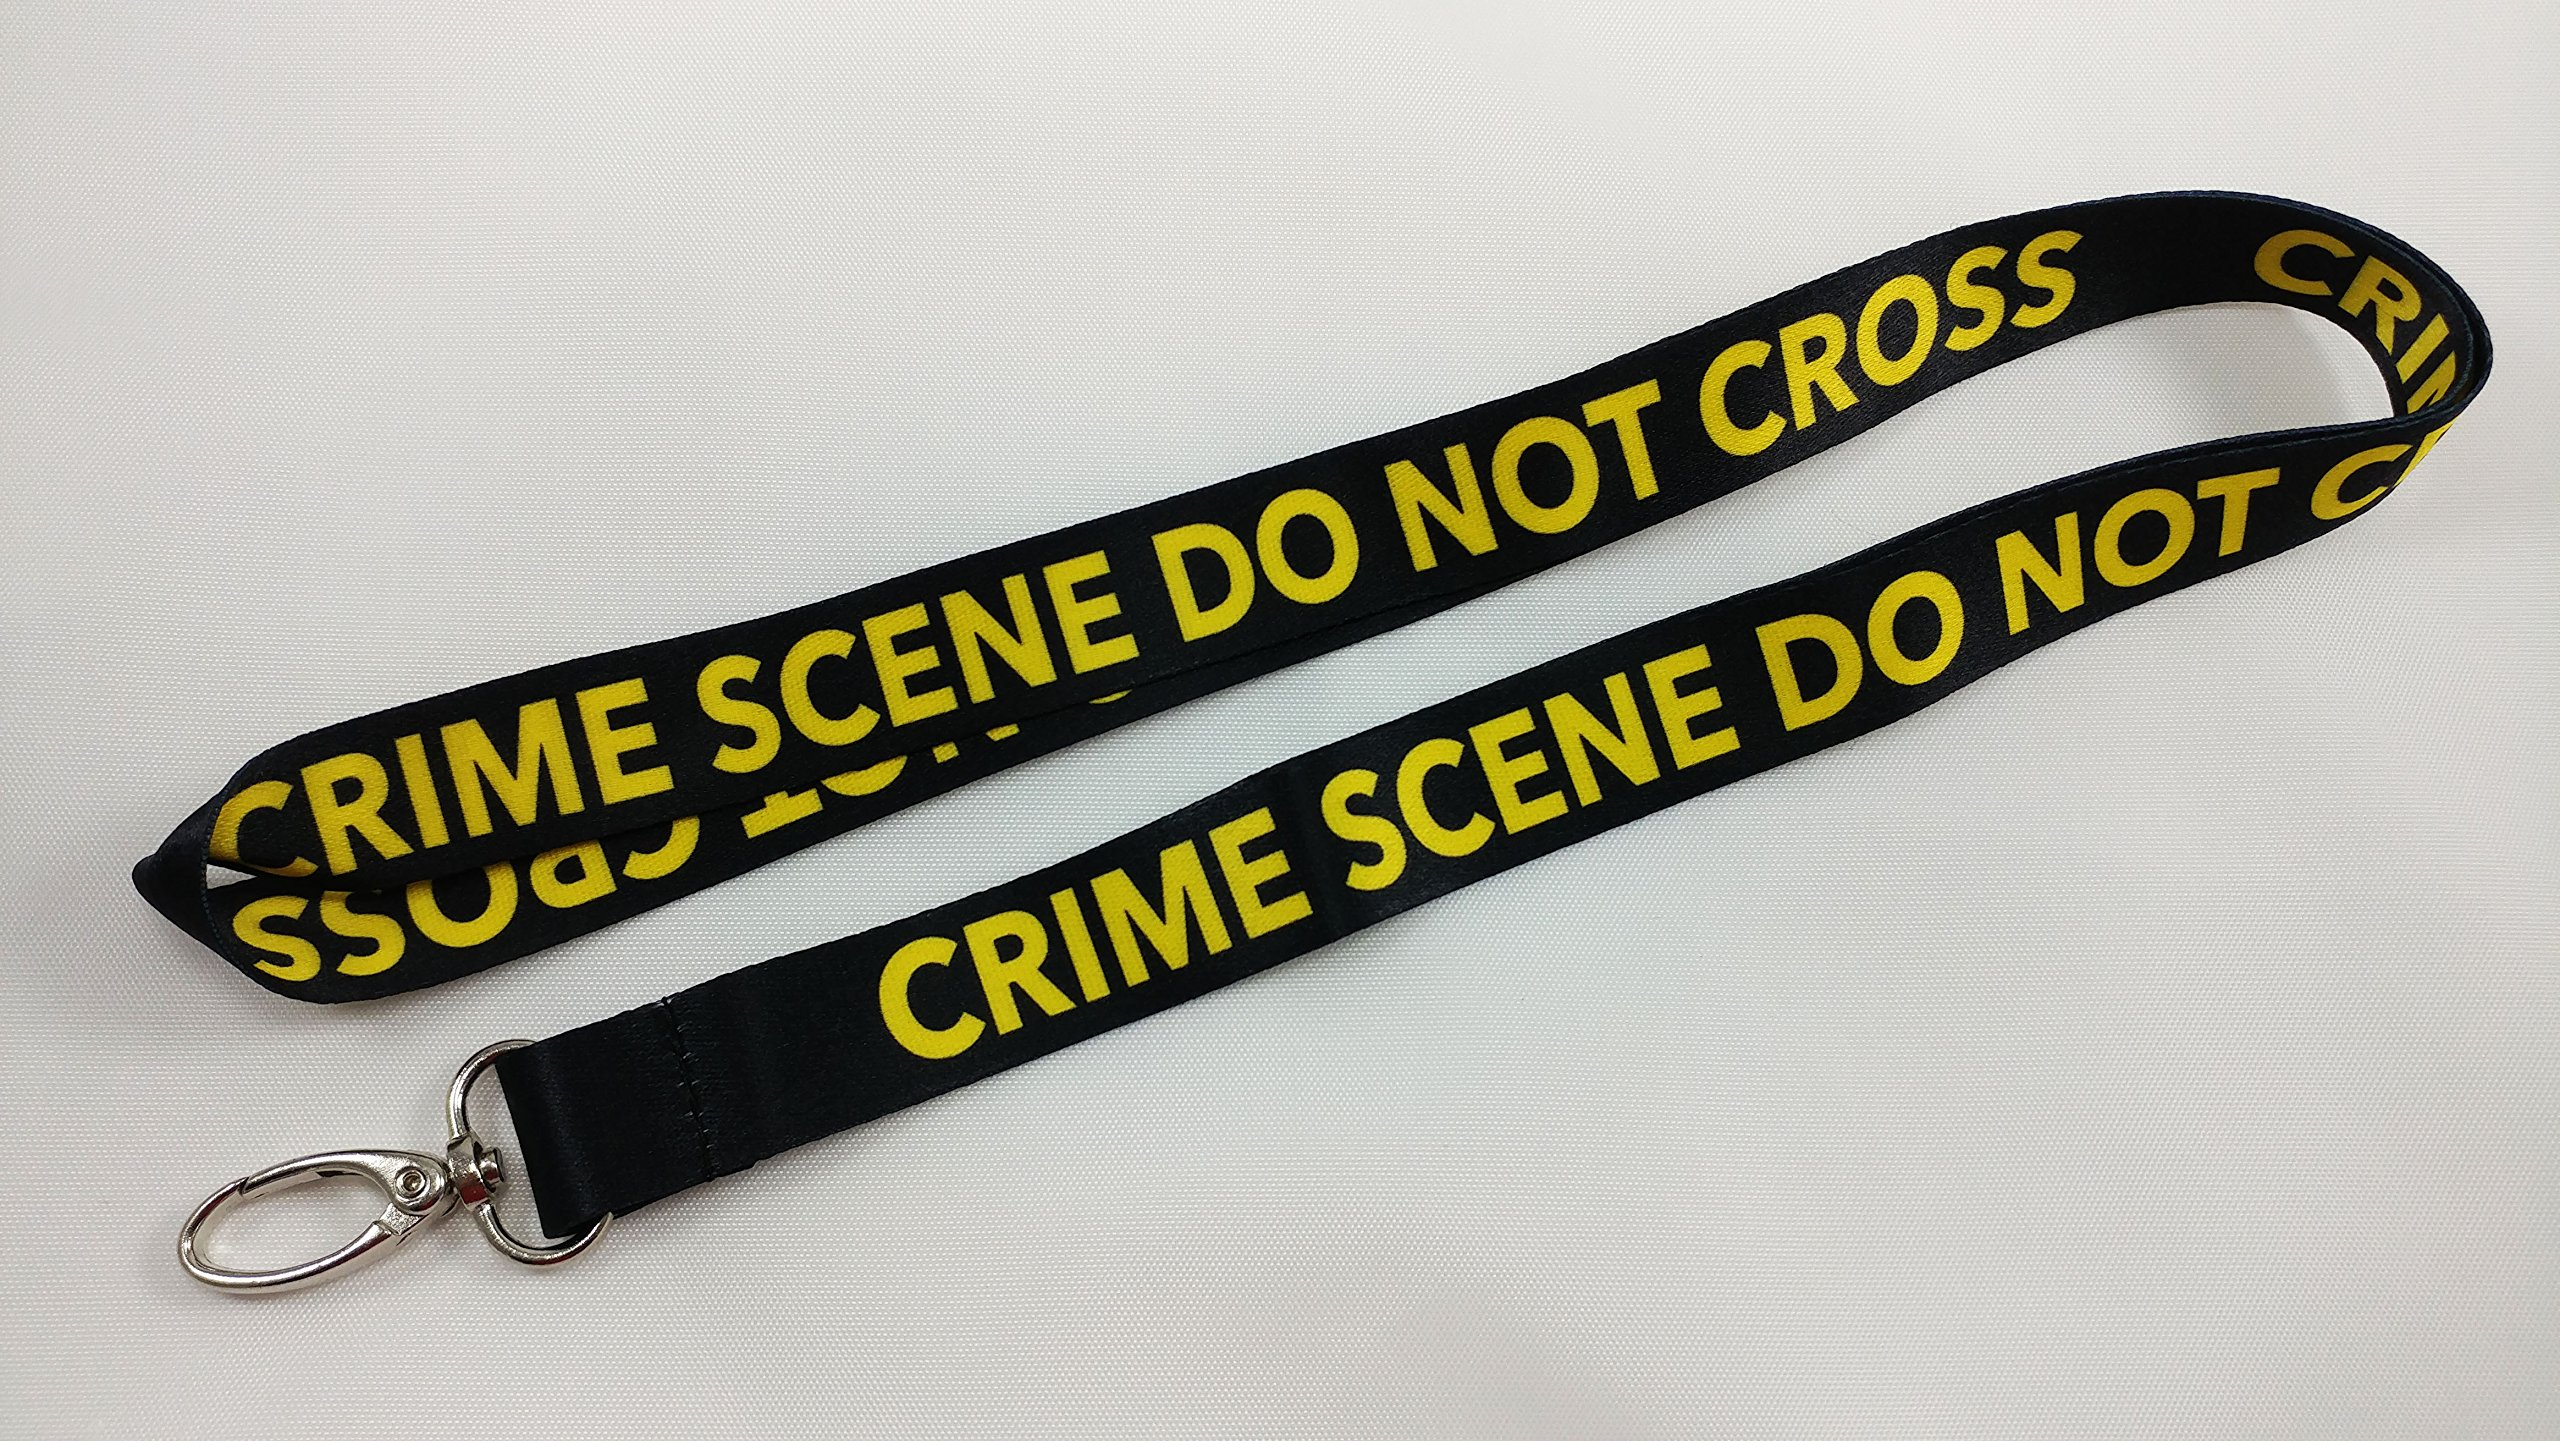 Crime Scene Do Not CrossBlack Lanyard with clip for keys or id badges. Great for work id badge, school id badge, car keys, house keys. Perfect for CSI fans, forensic students. (50)